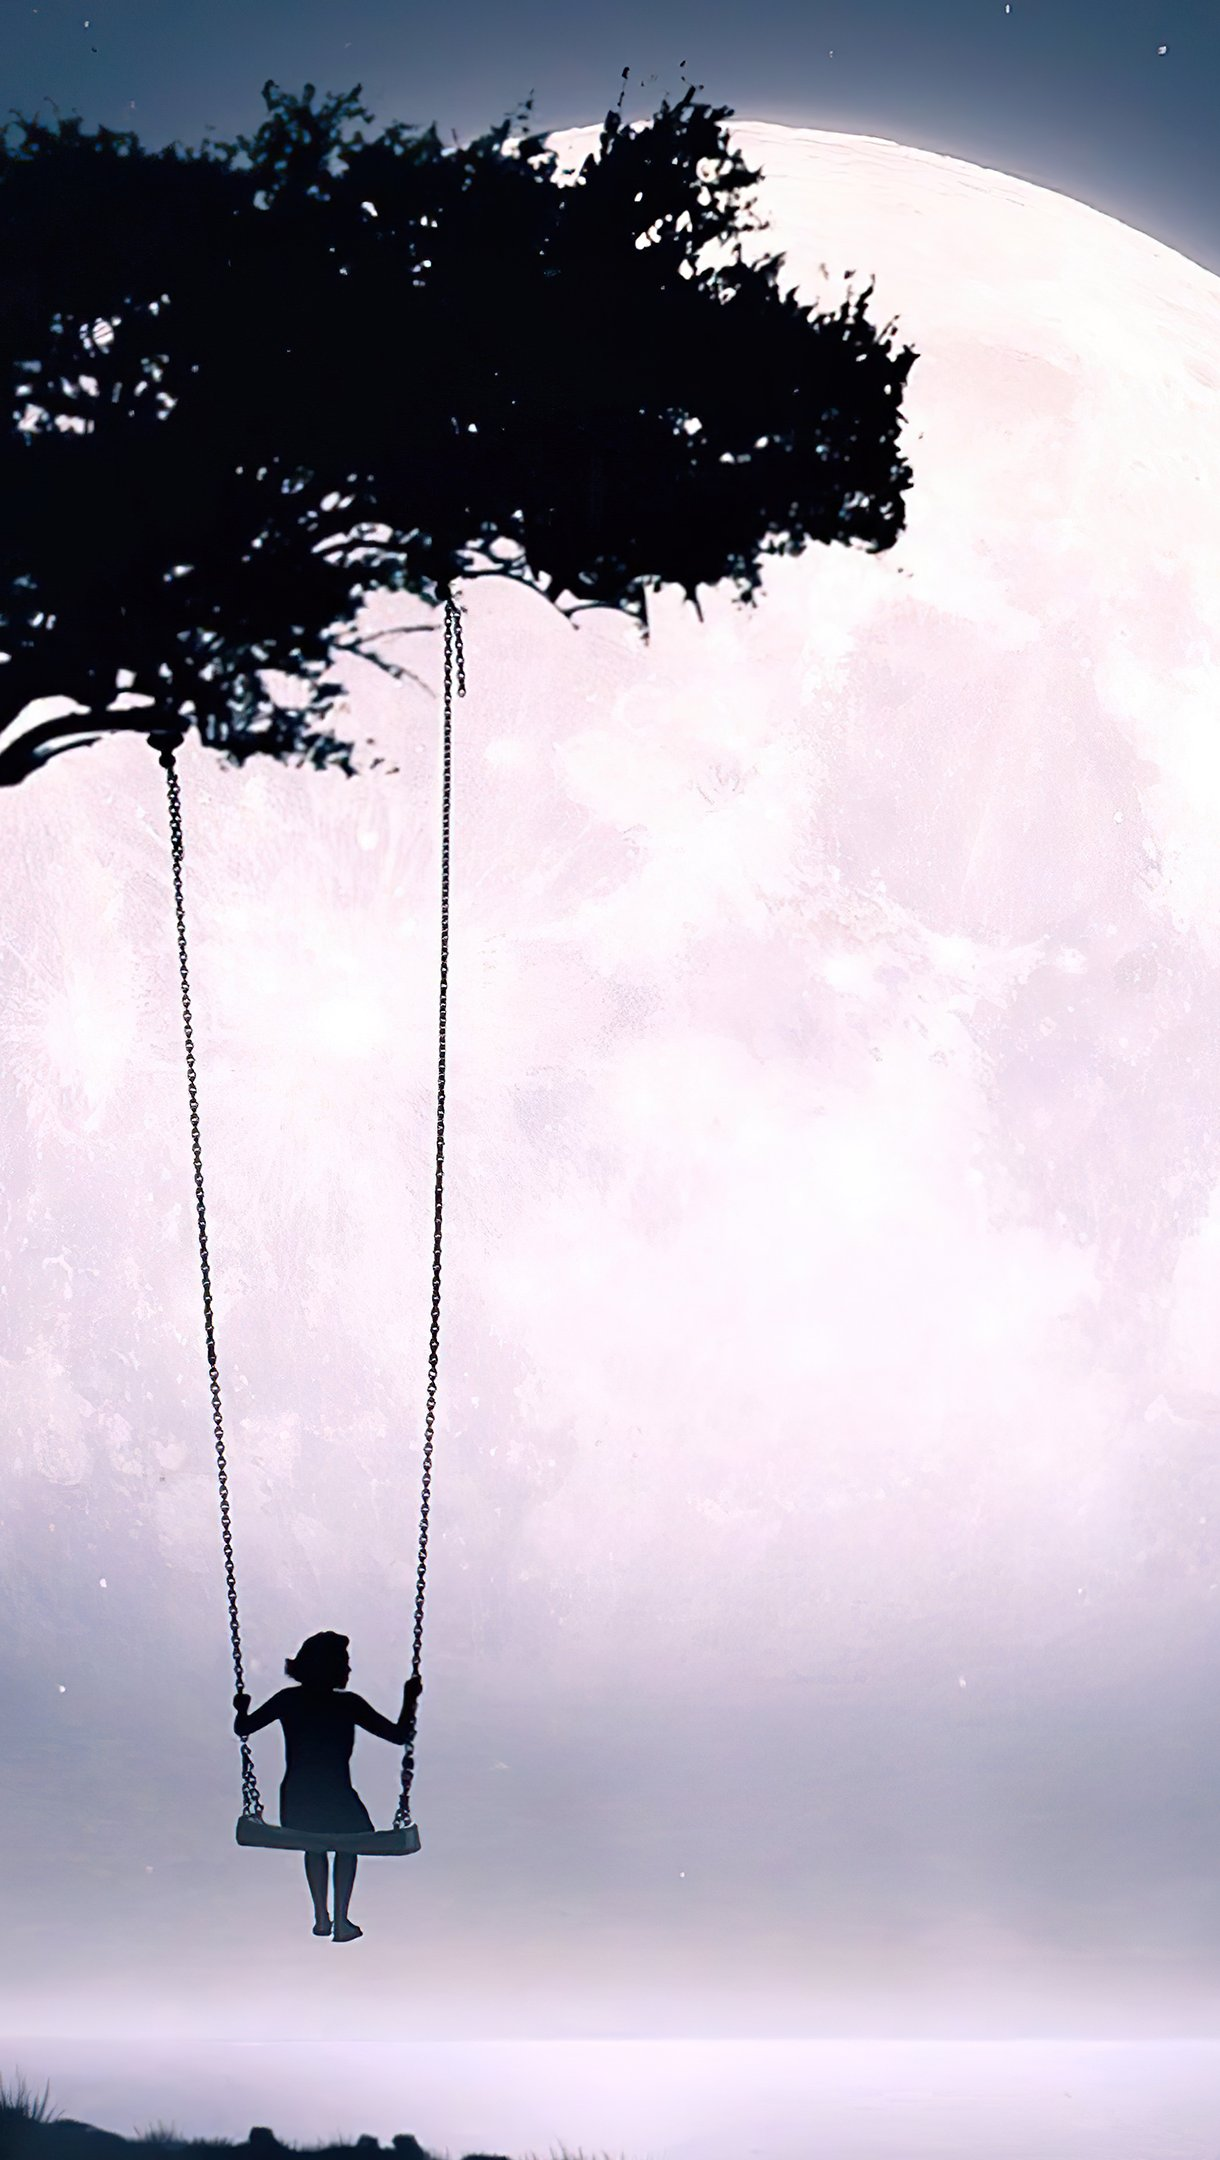 Wallpaper Girl on a swing looking at the moon Vertical